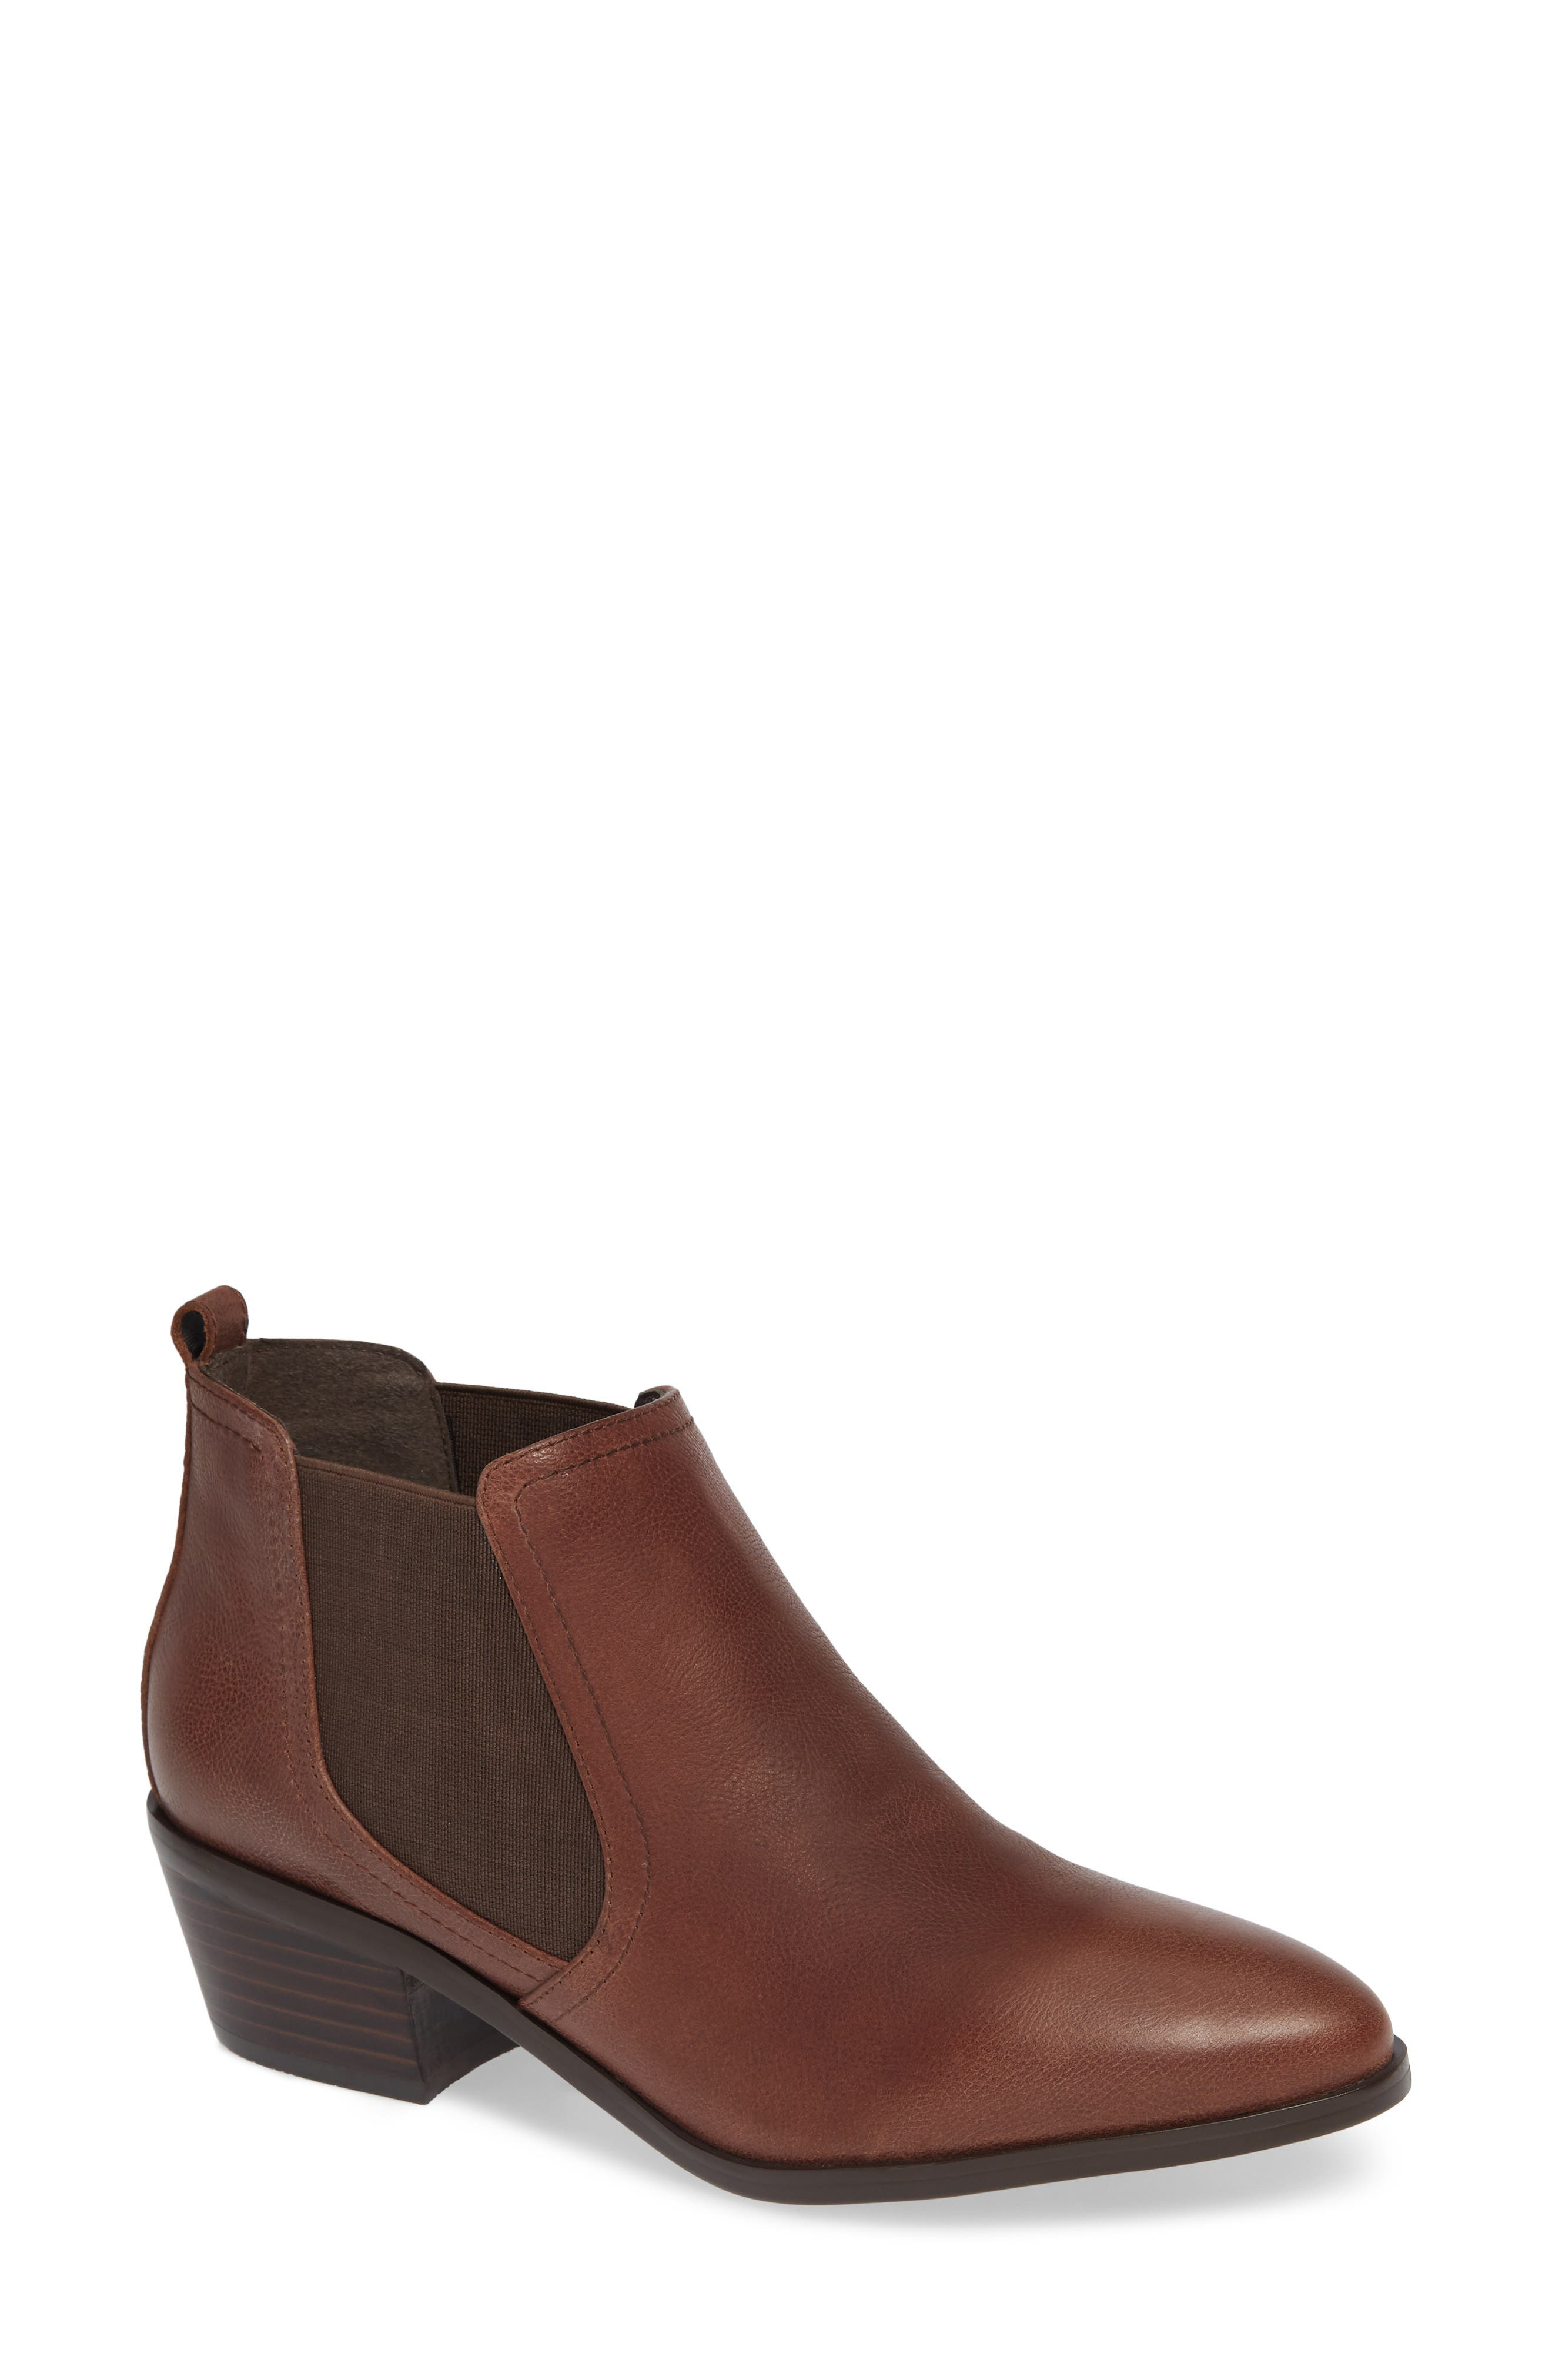 Maxie Chelsea Boot, Main, color, LUGGAGE LEATHER